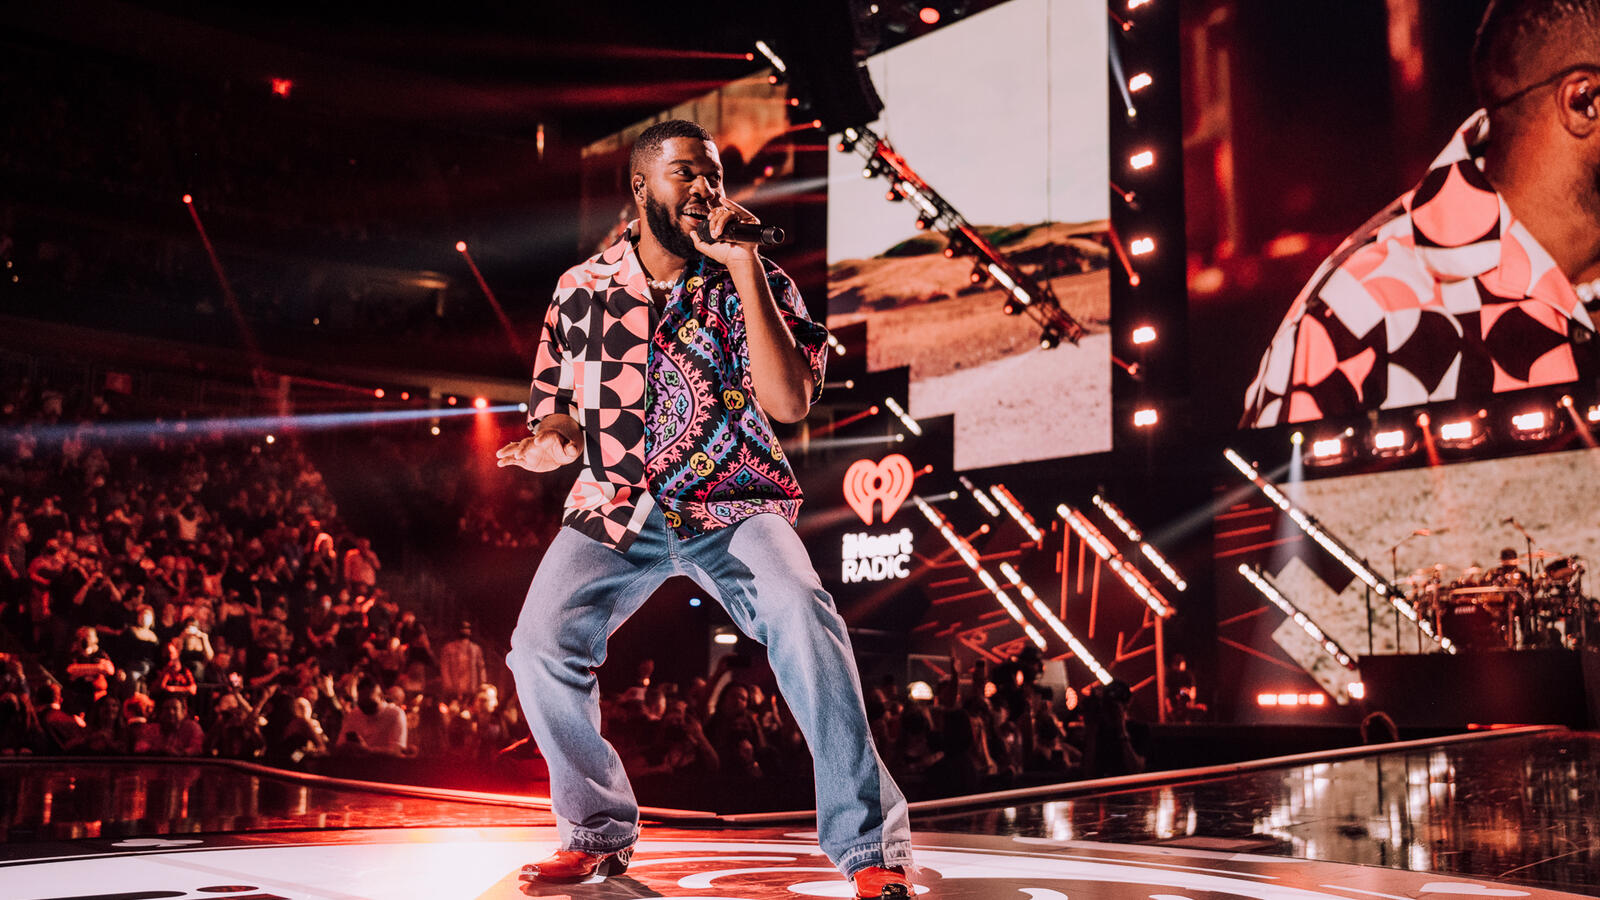 Khalid Brings The High Vibrations To The 2021 iHeartRadio Music Festival